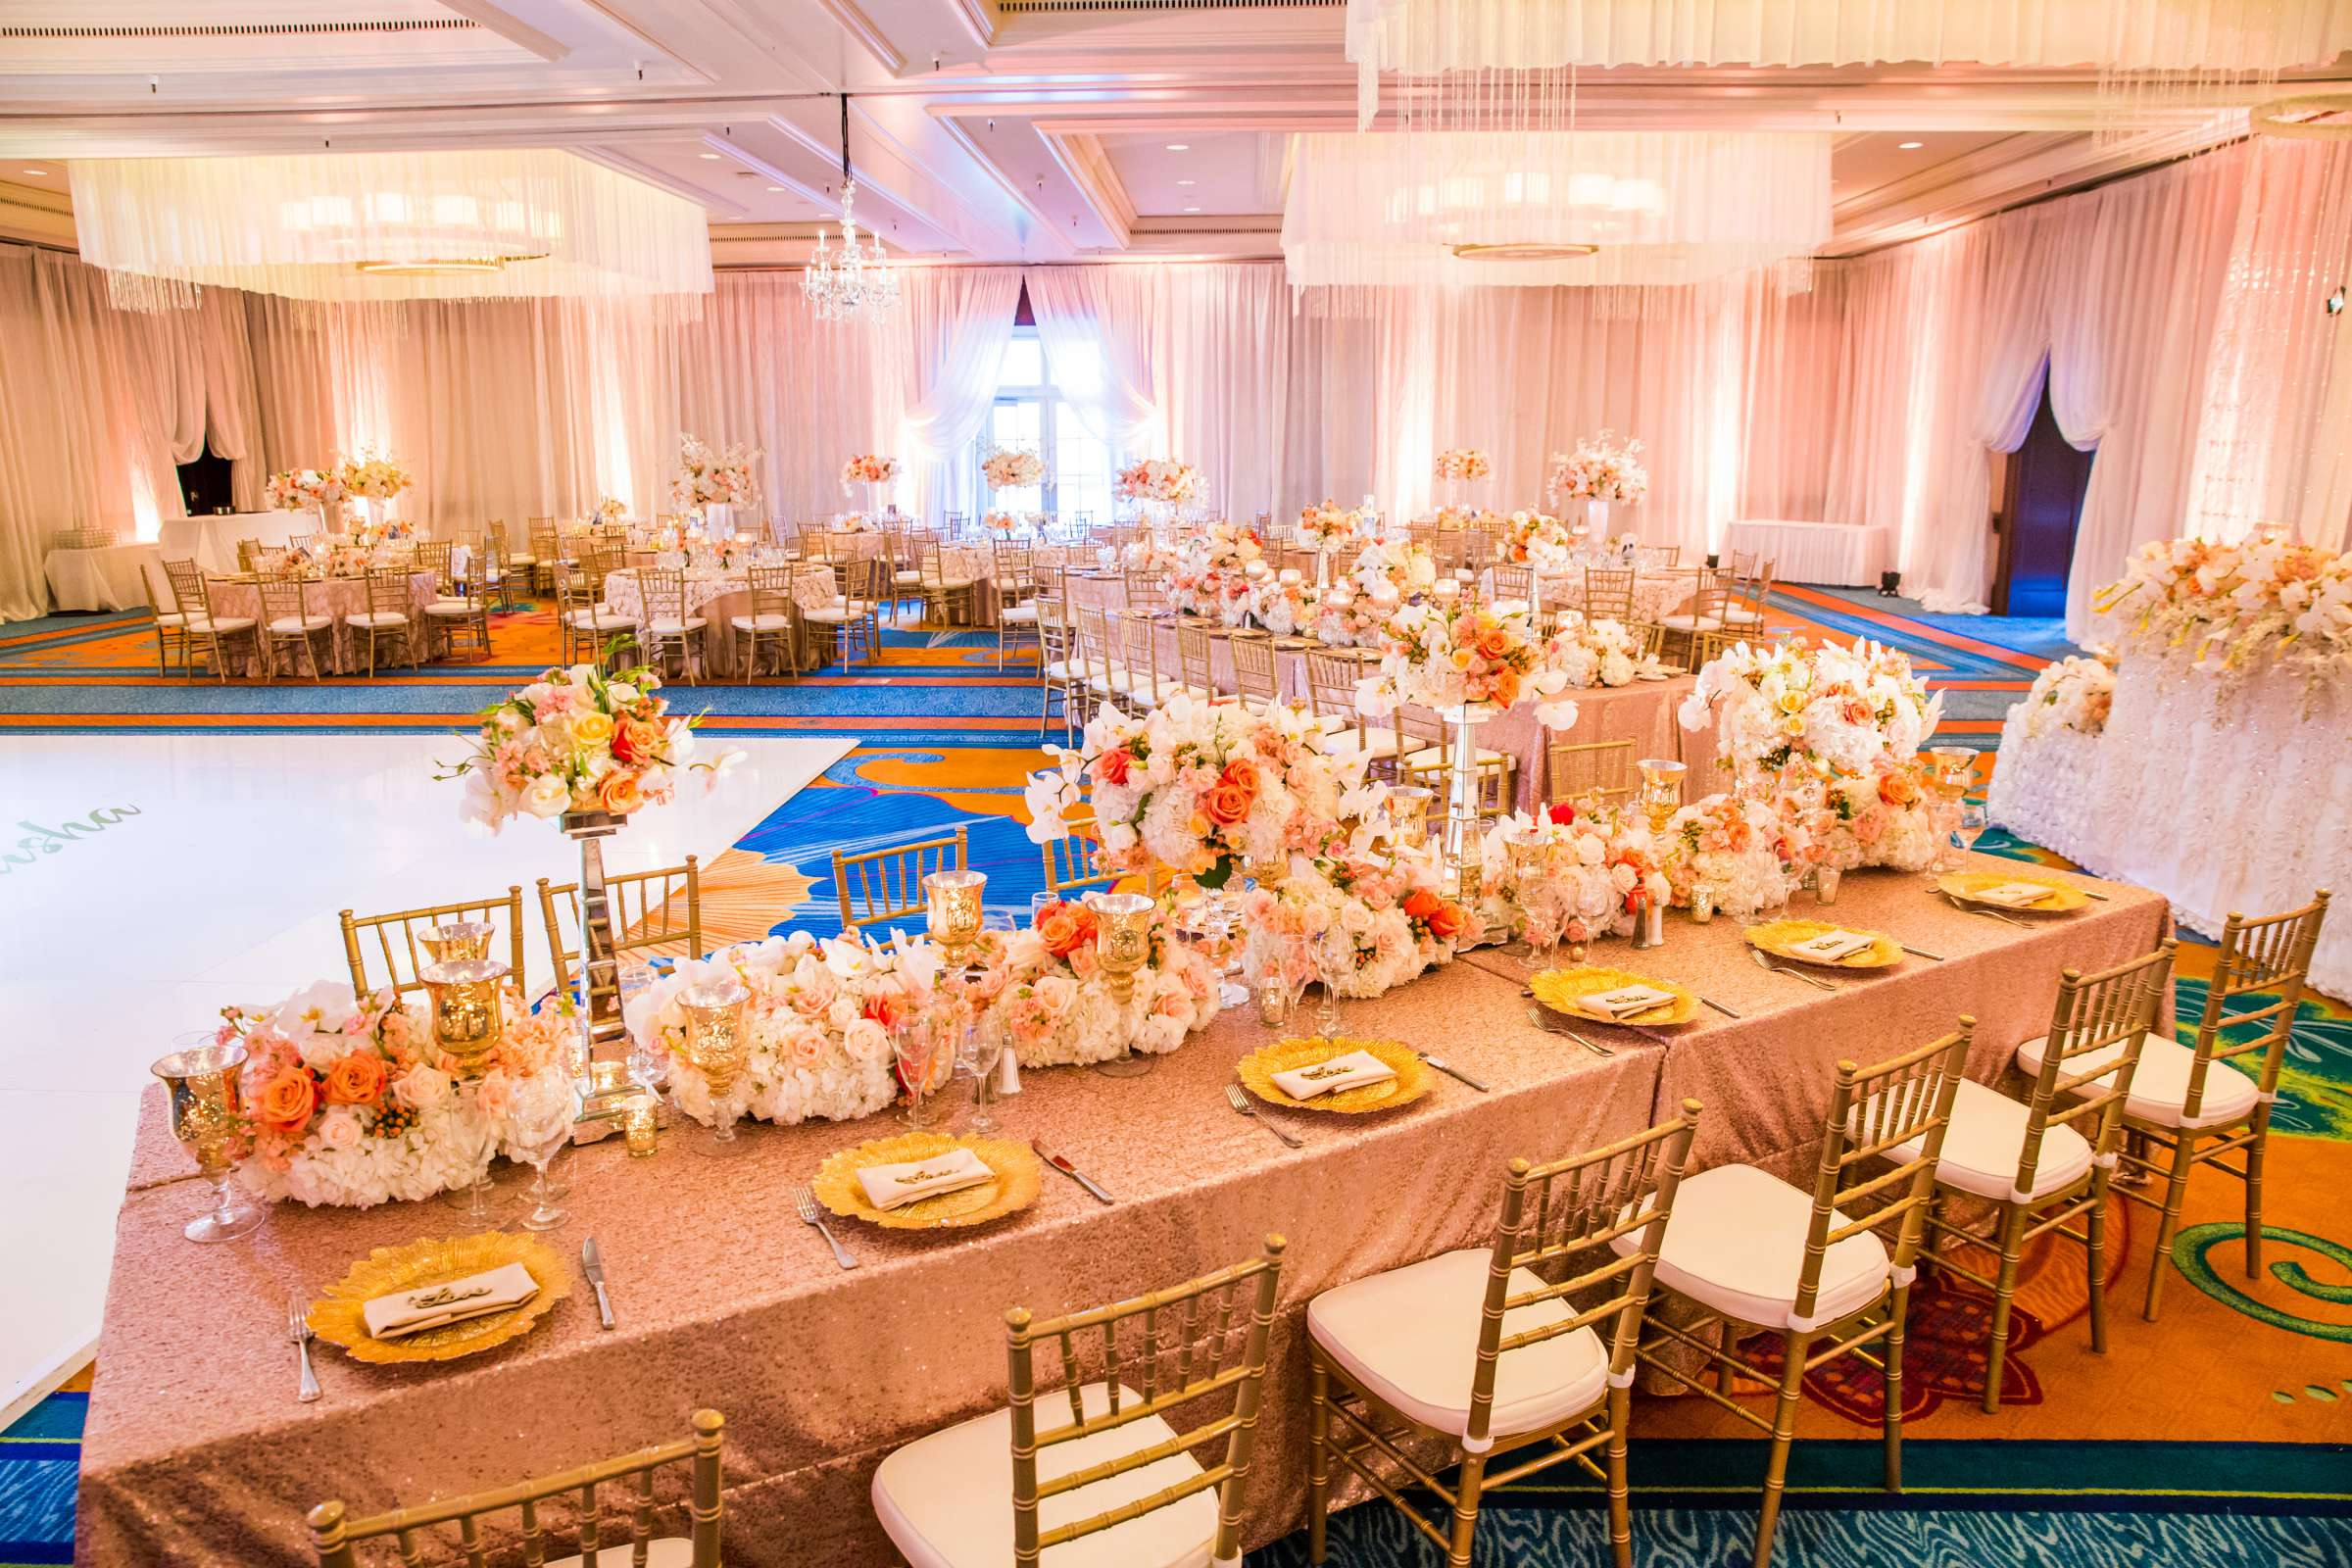 Omni La Costa Resort & Spa Wedding coordinated by Nahid Global Events, Natasha and Kate Wedding Photo #257354 by True Photography